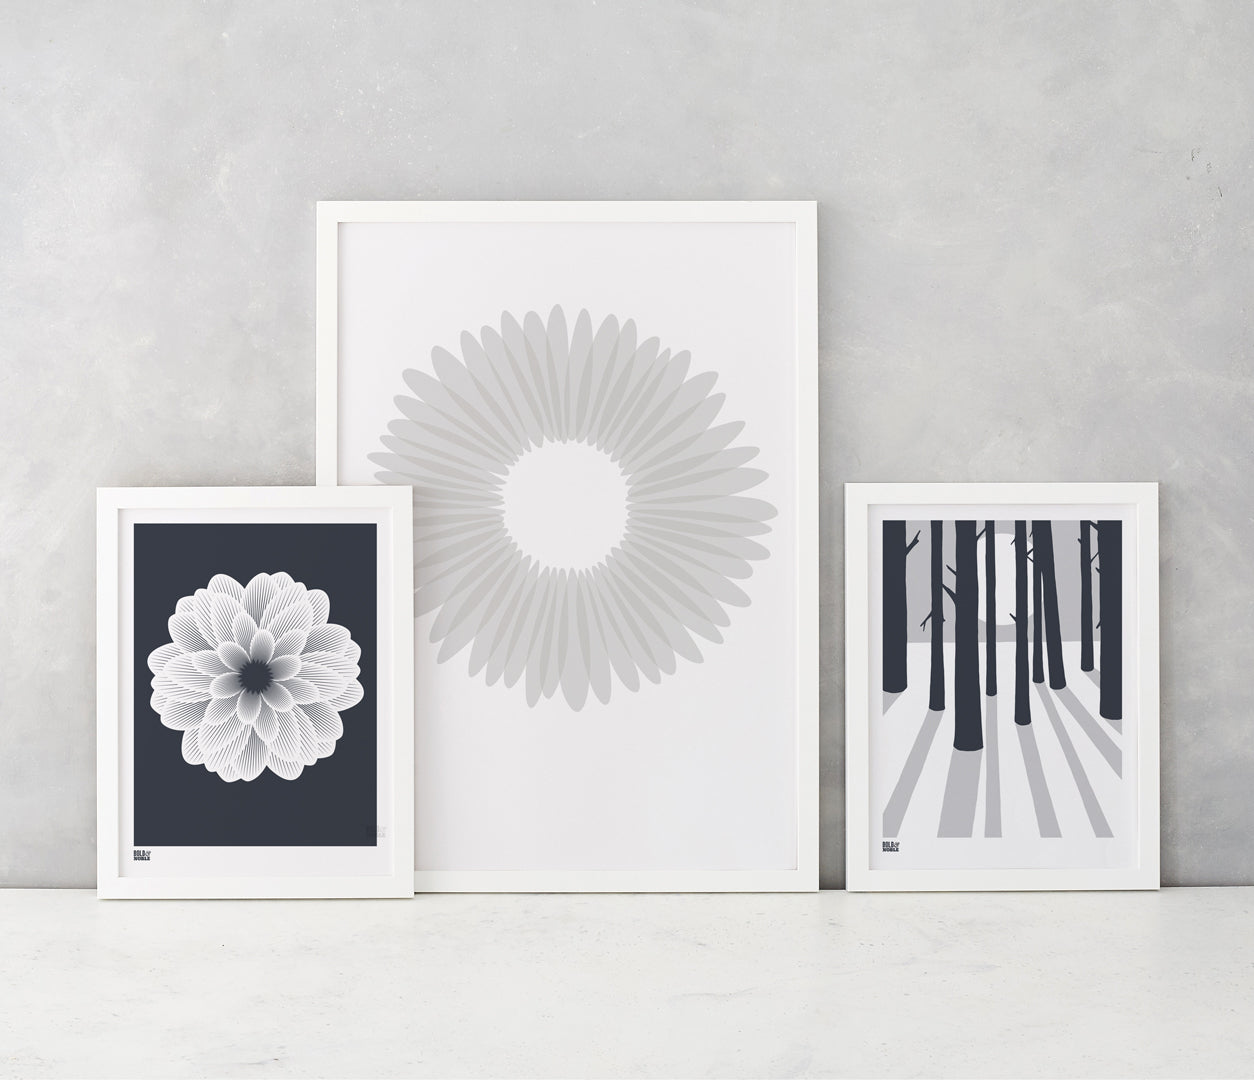 Wall Art where to start: Dahlia Waterlily, Daisy and In the Woods screen prints